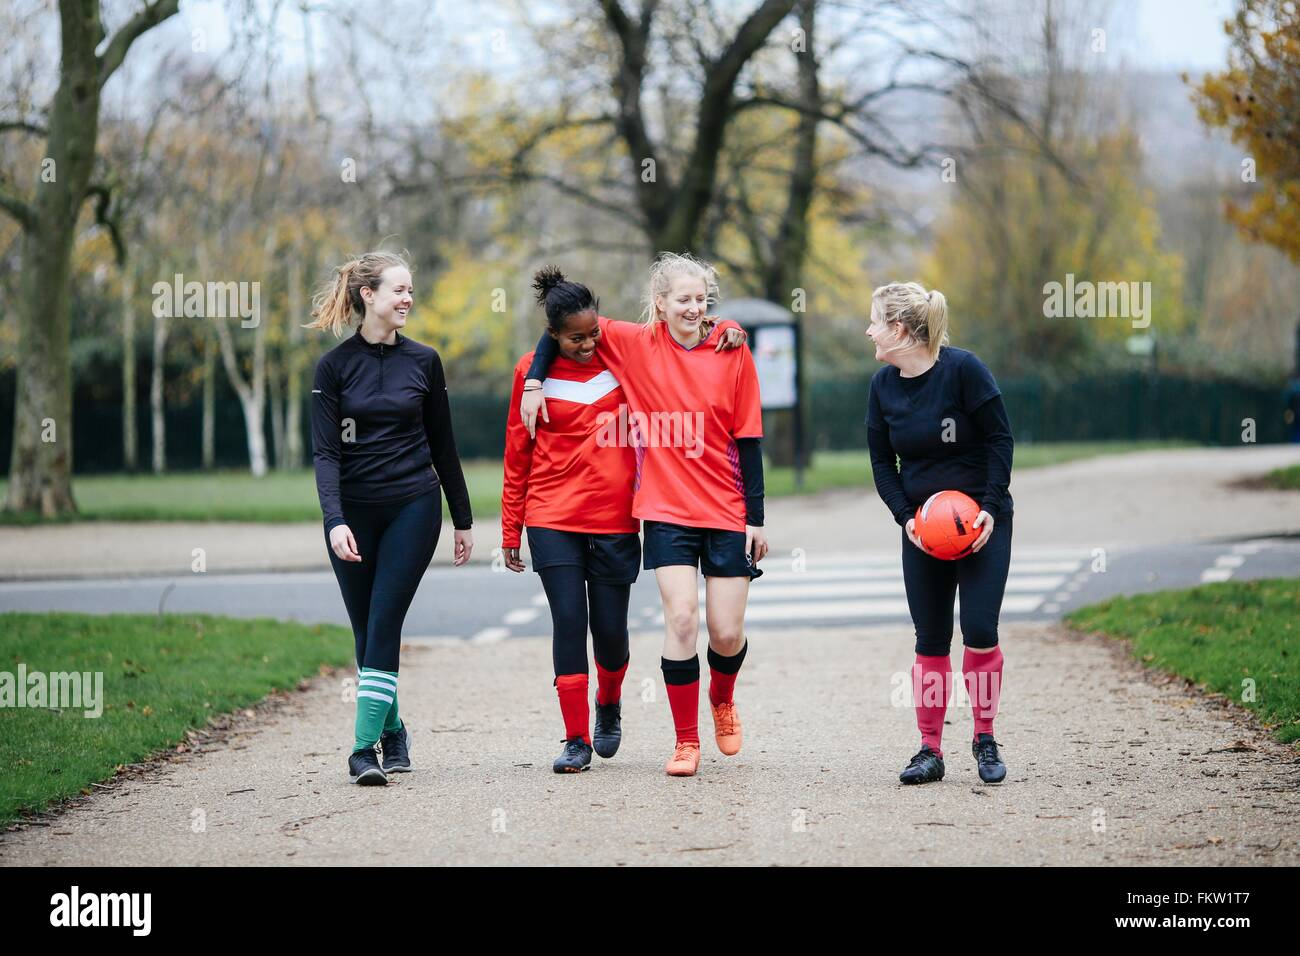 Female soccer players en route to play soccer in park - Stock Image